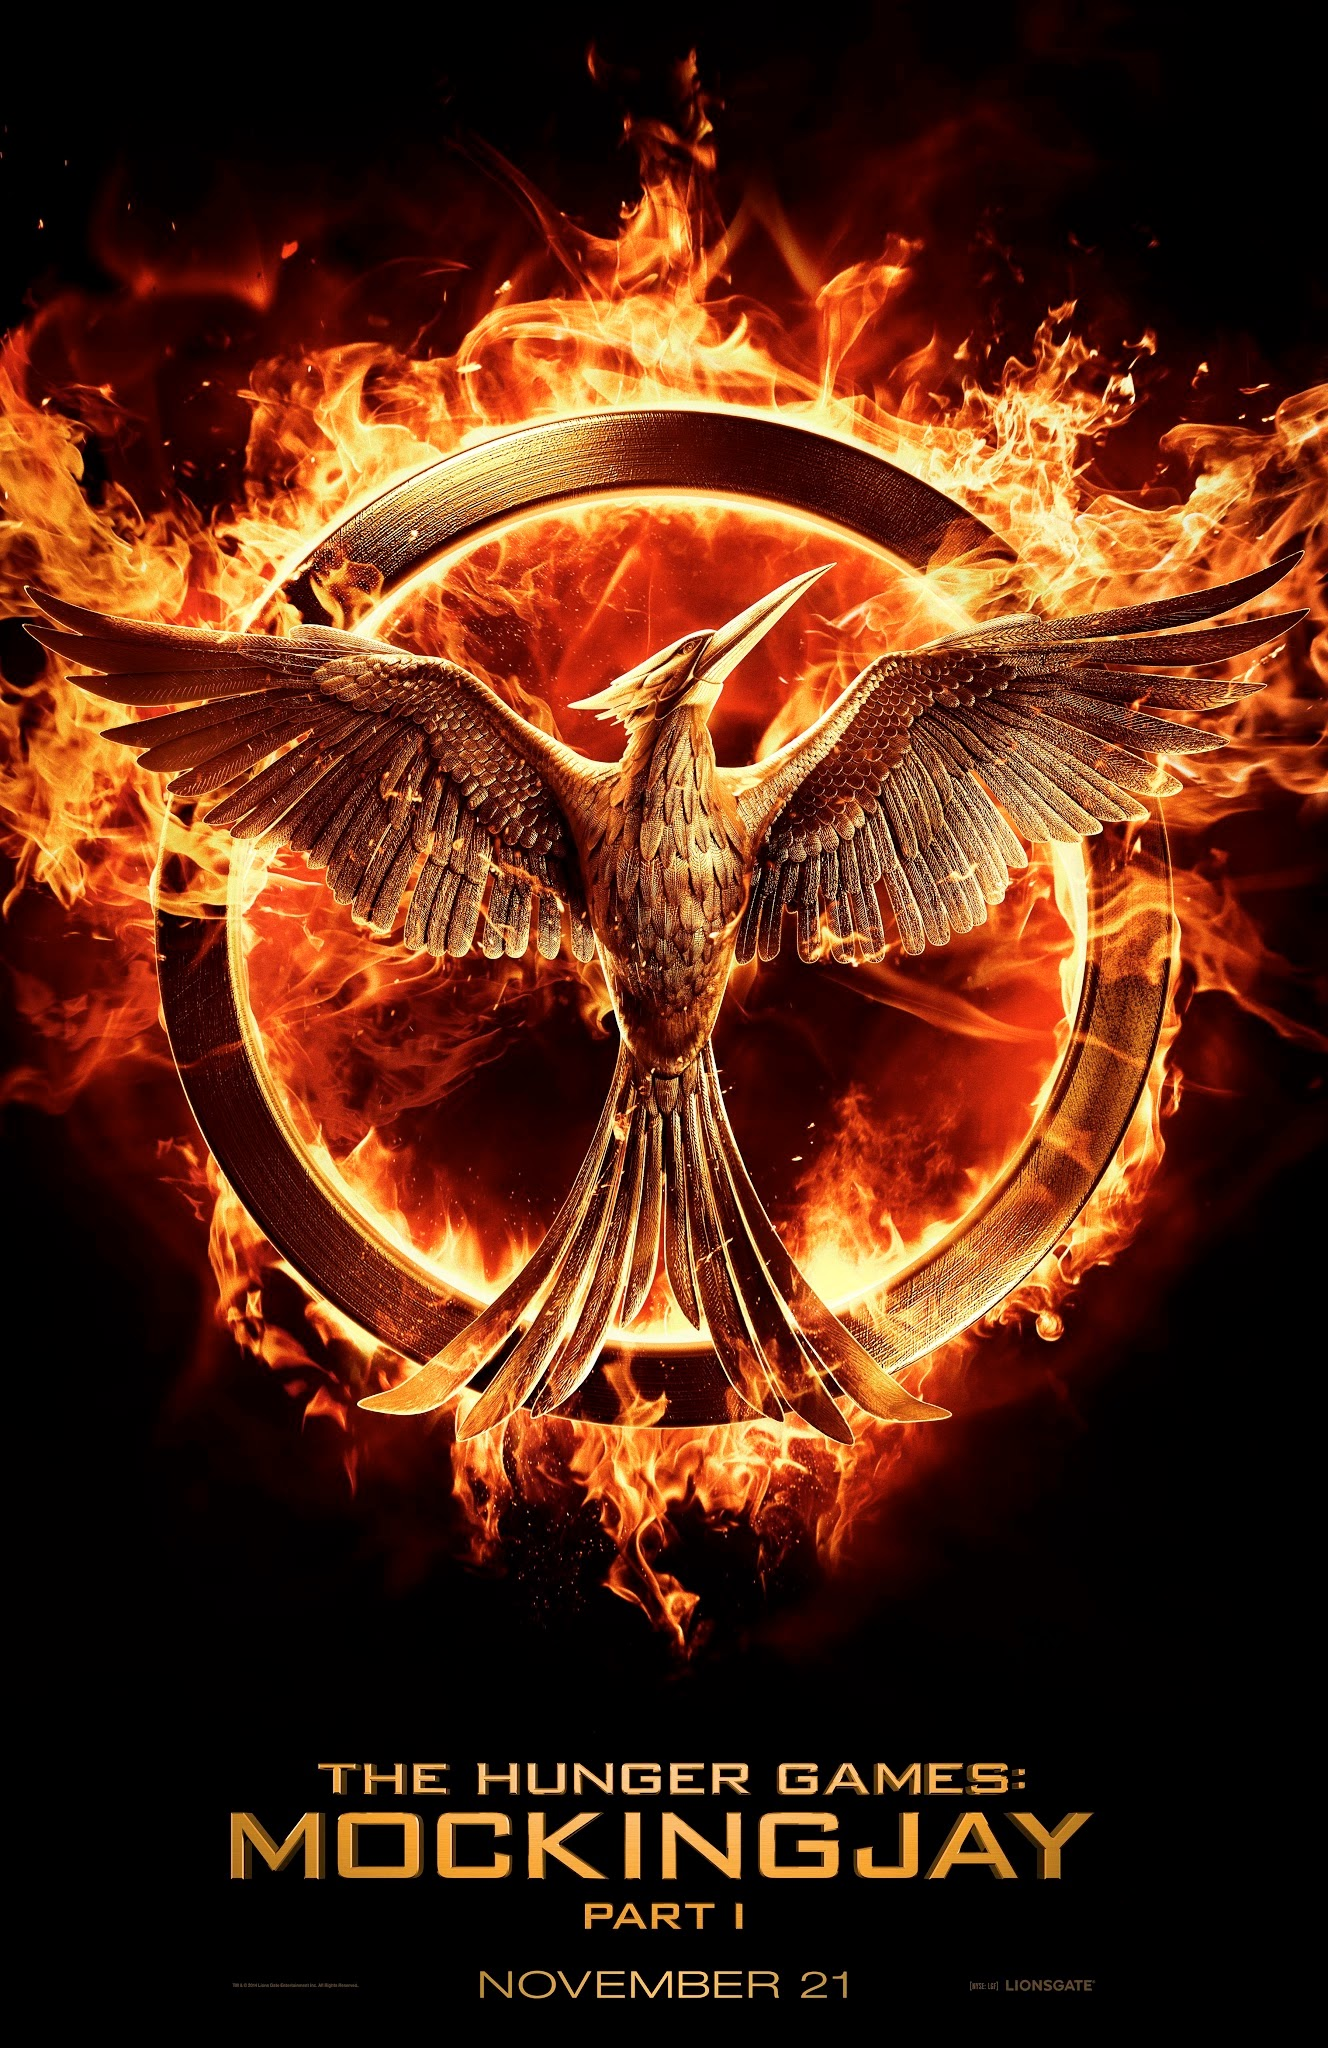 Welcome to district 12 official high res mockingjay logo lionsgate released the super epic logo for mockingjay part 1 that was so awesomely revealed at the end of catching fire graphic makers go nuts buycottarizona